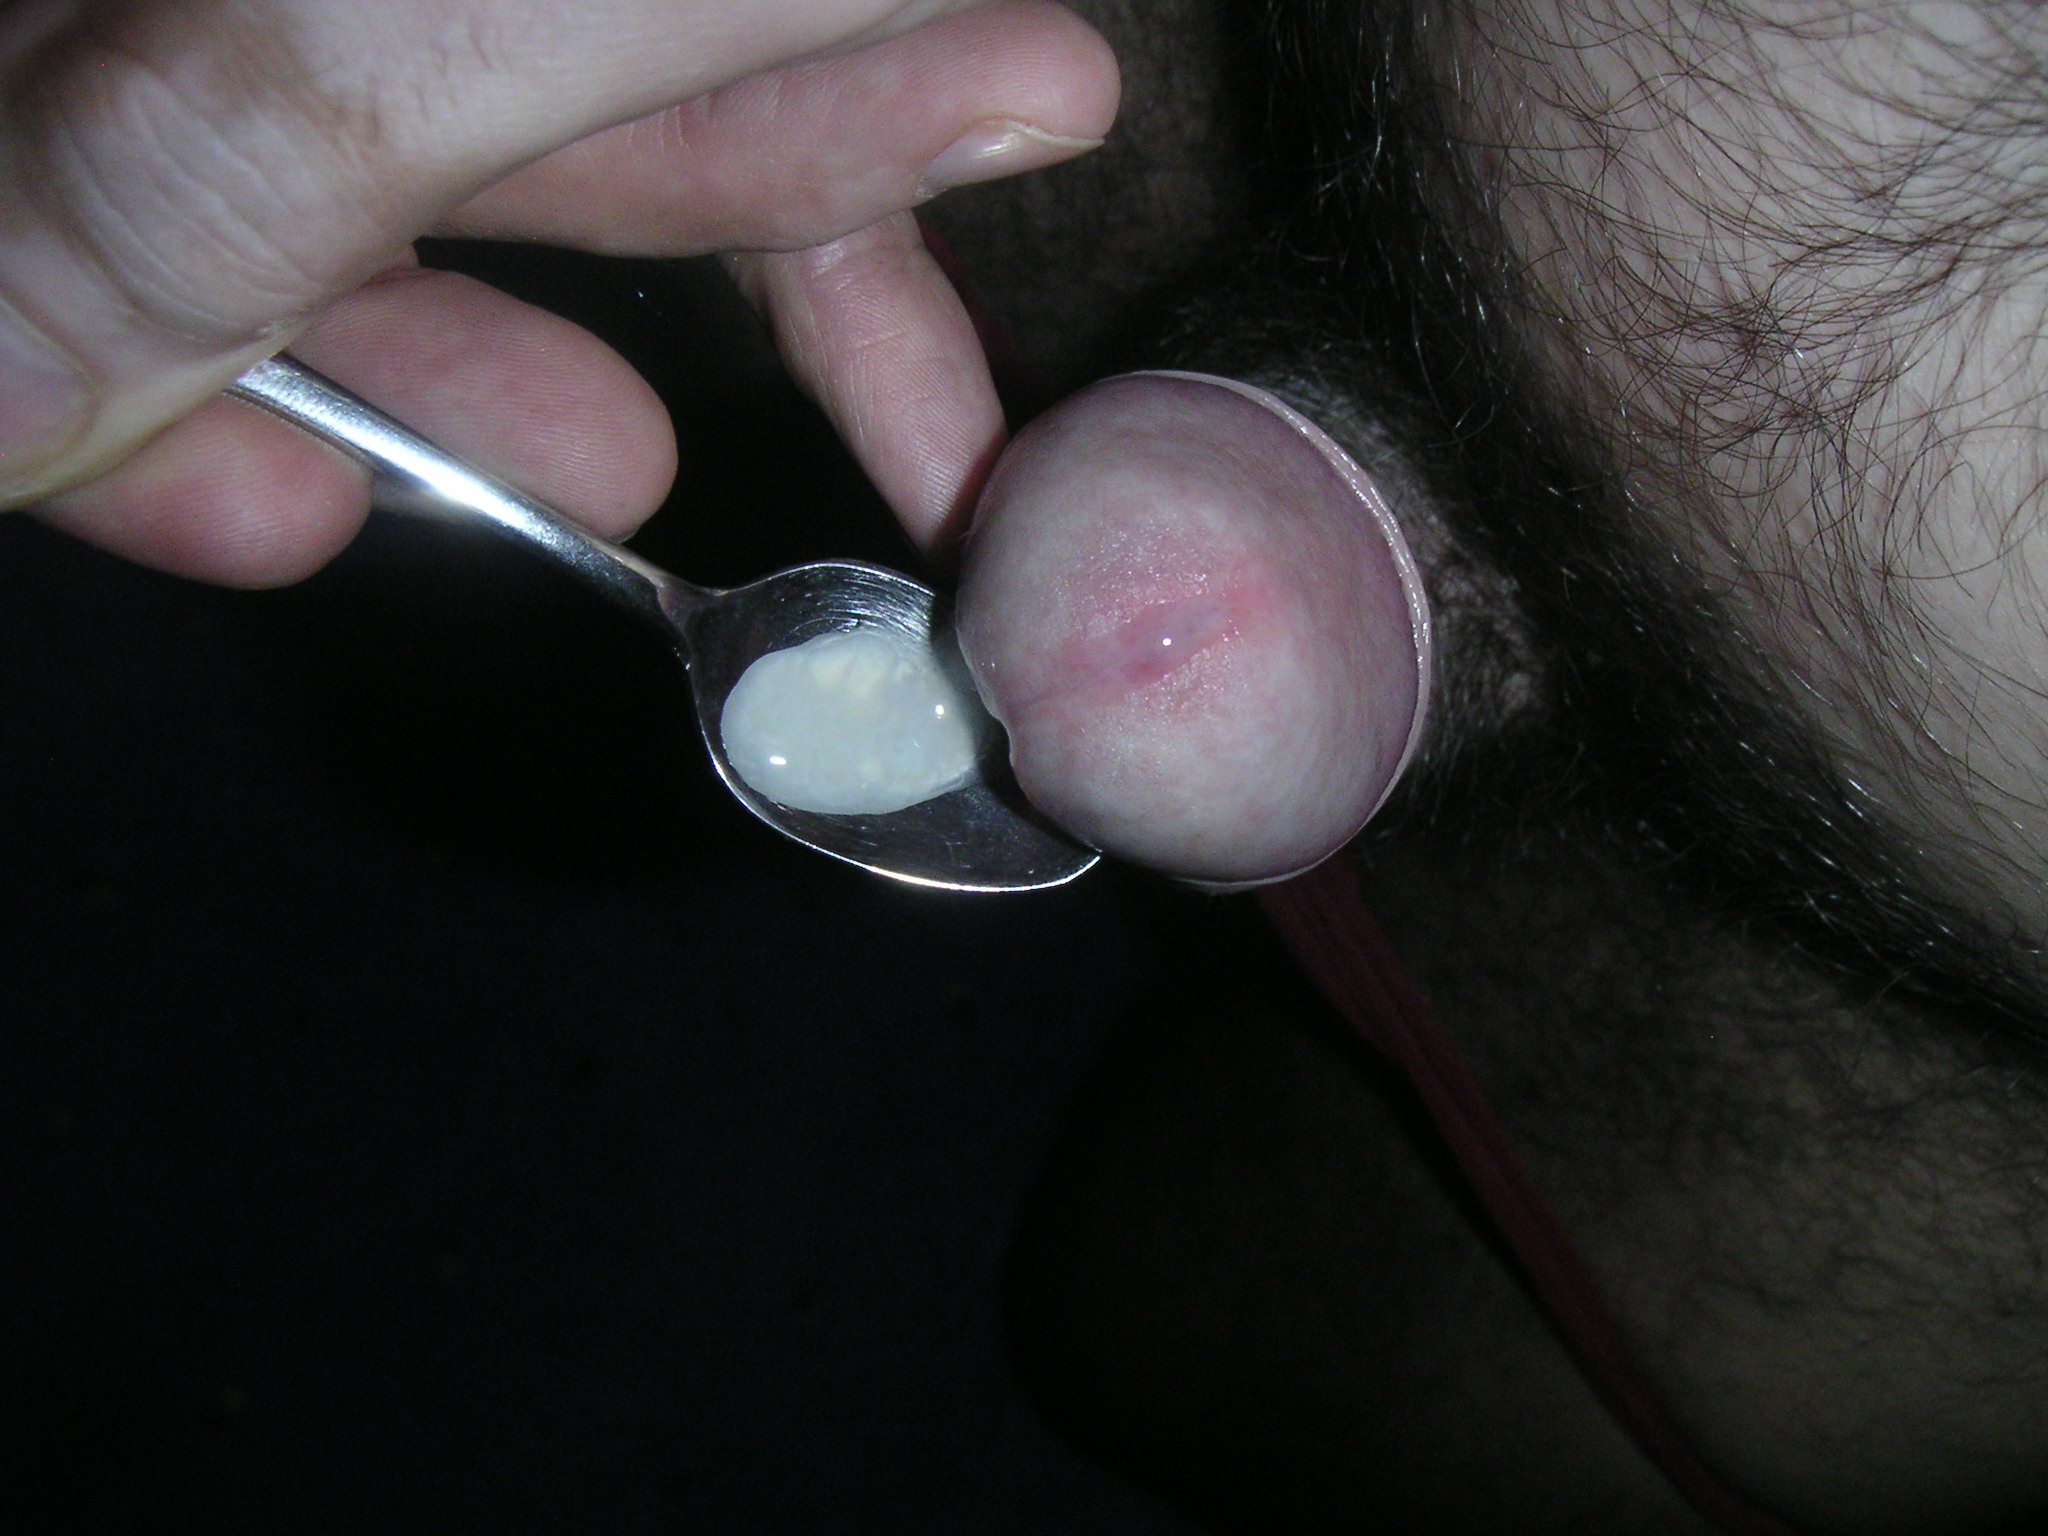 Mixing selfsuck on yuvutu homemade amateur porn movies and sex videos